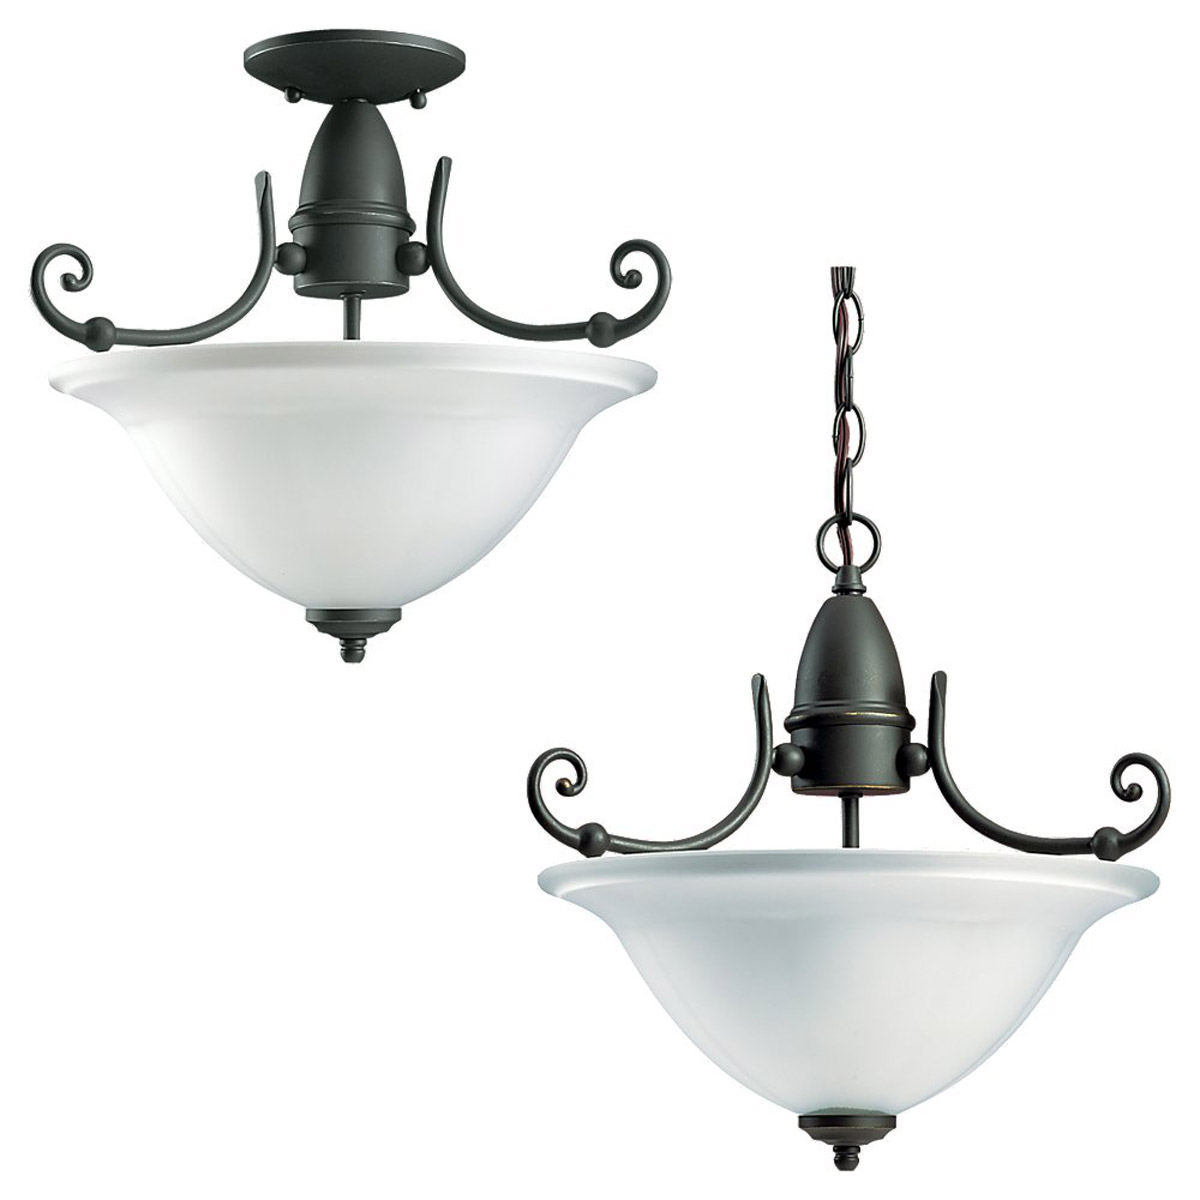 Sea Gull Lighting Canterbury 3 Light Semi-Flush Mount in Antique Bronze 59051BLE-71 photo